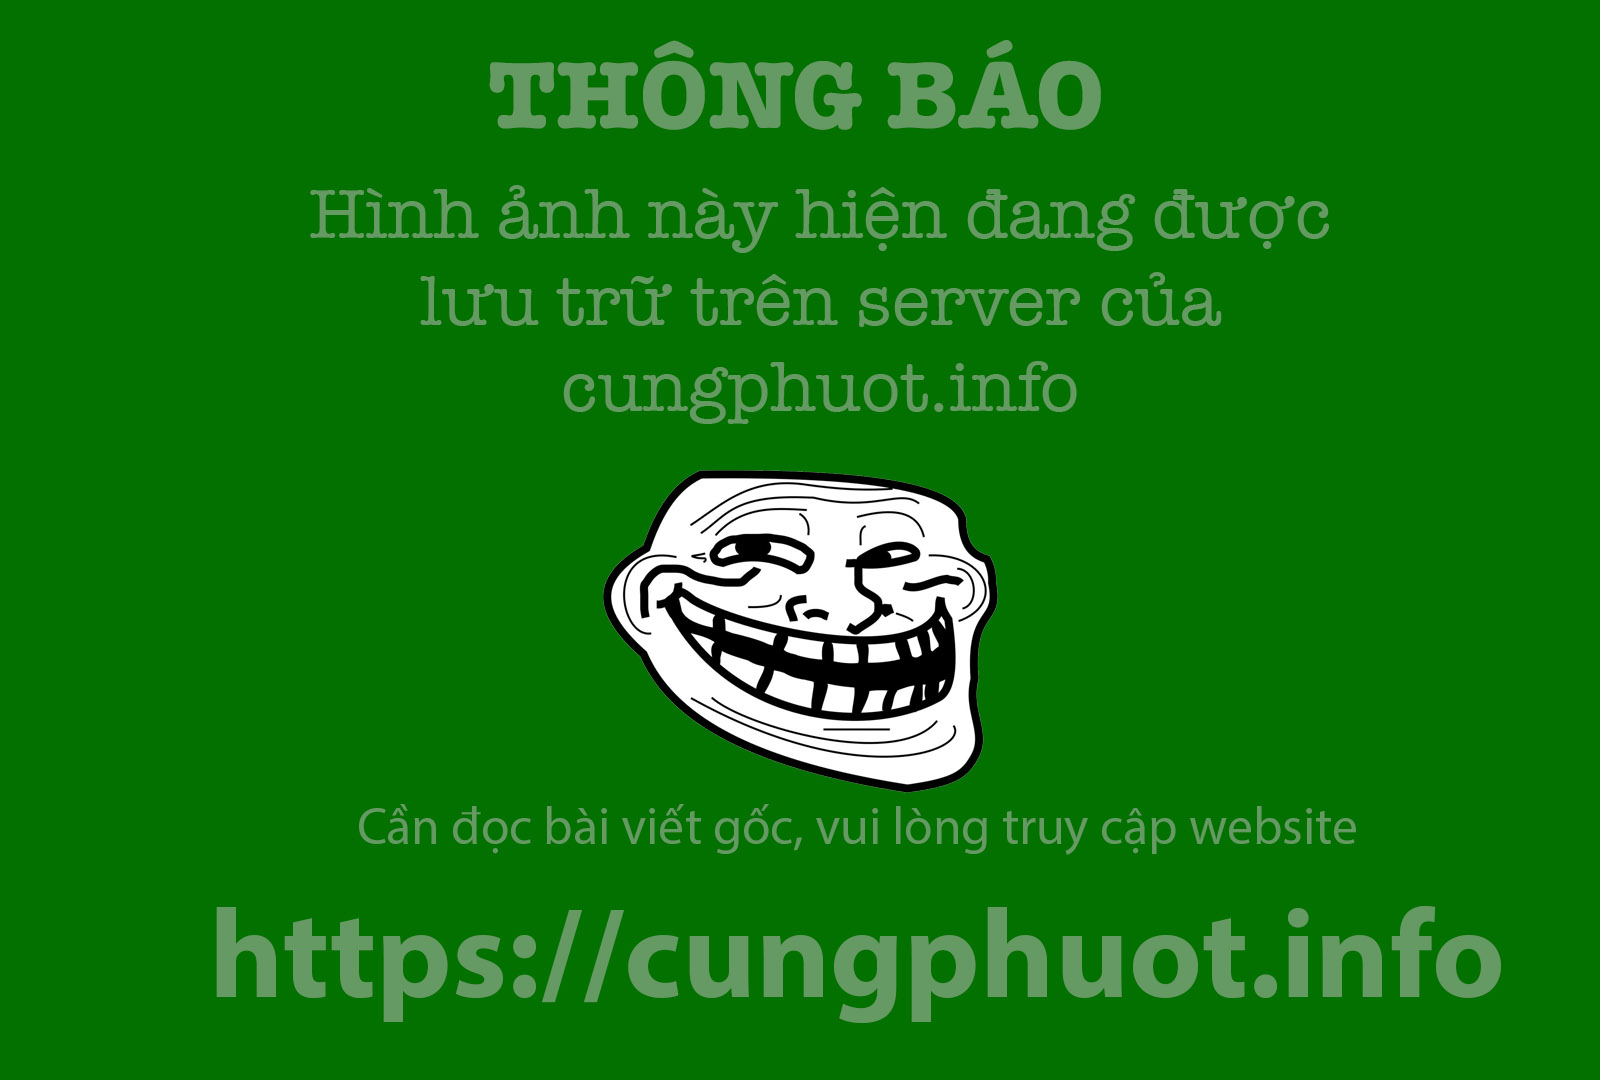 May von nui tren cong troi Muong Long hinh anh 1